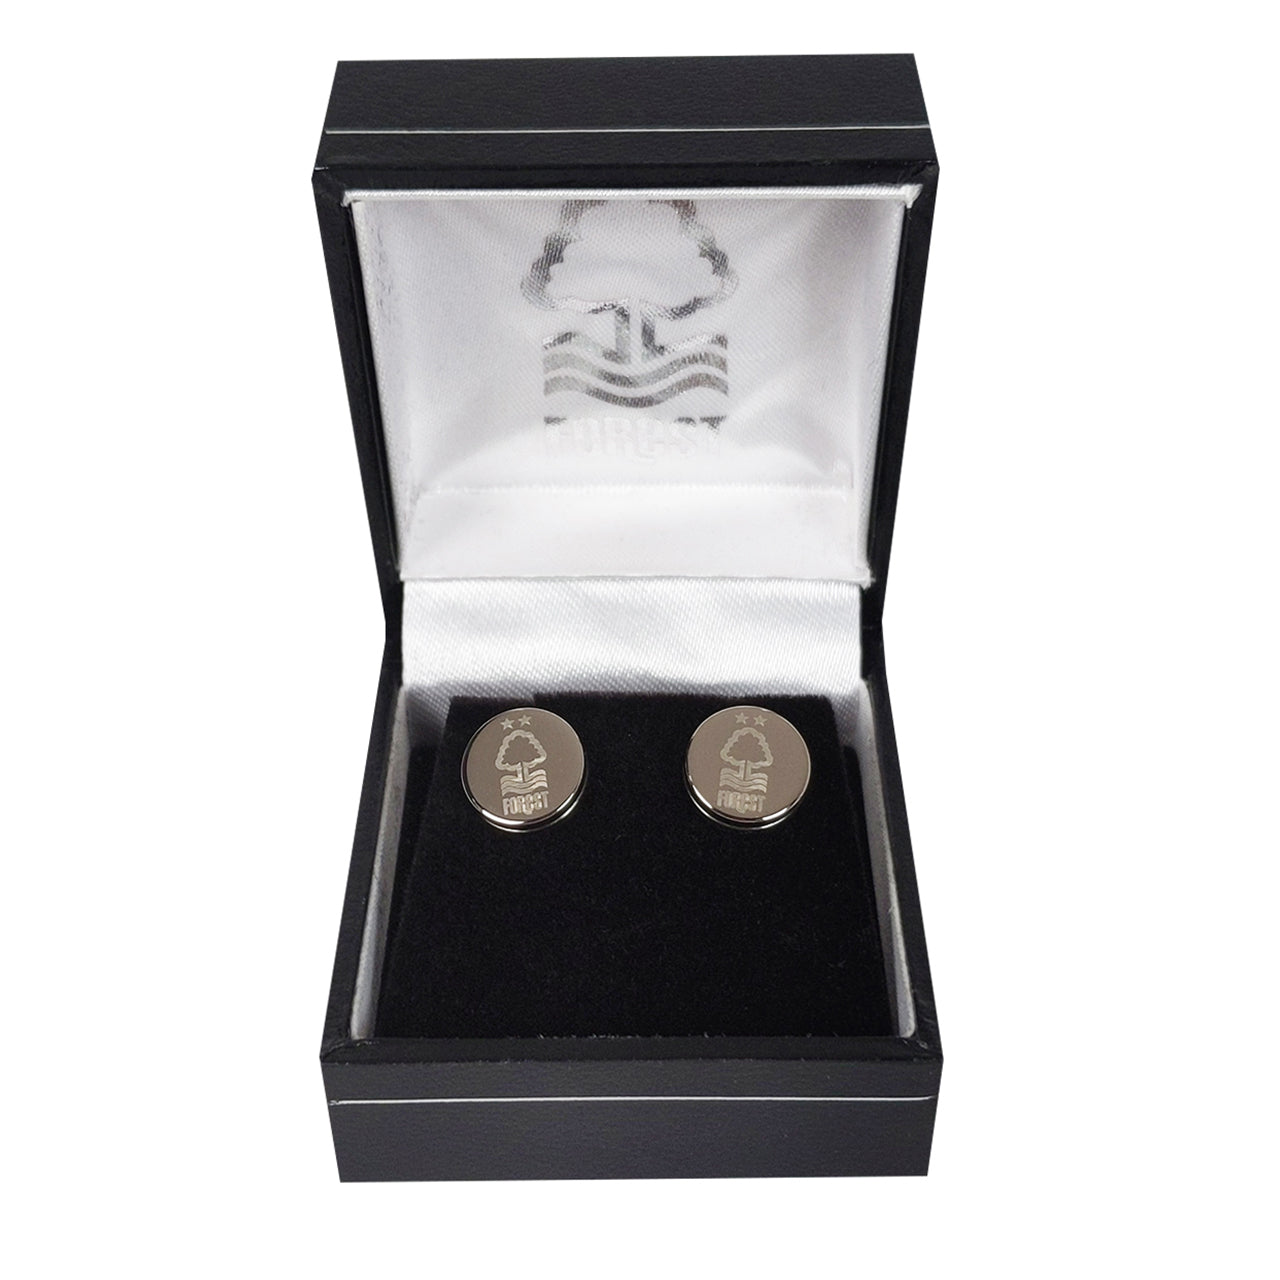 NFFC Crest Stud Earing - Pair